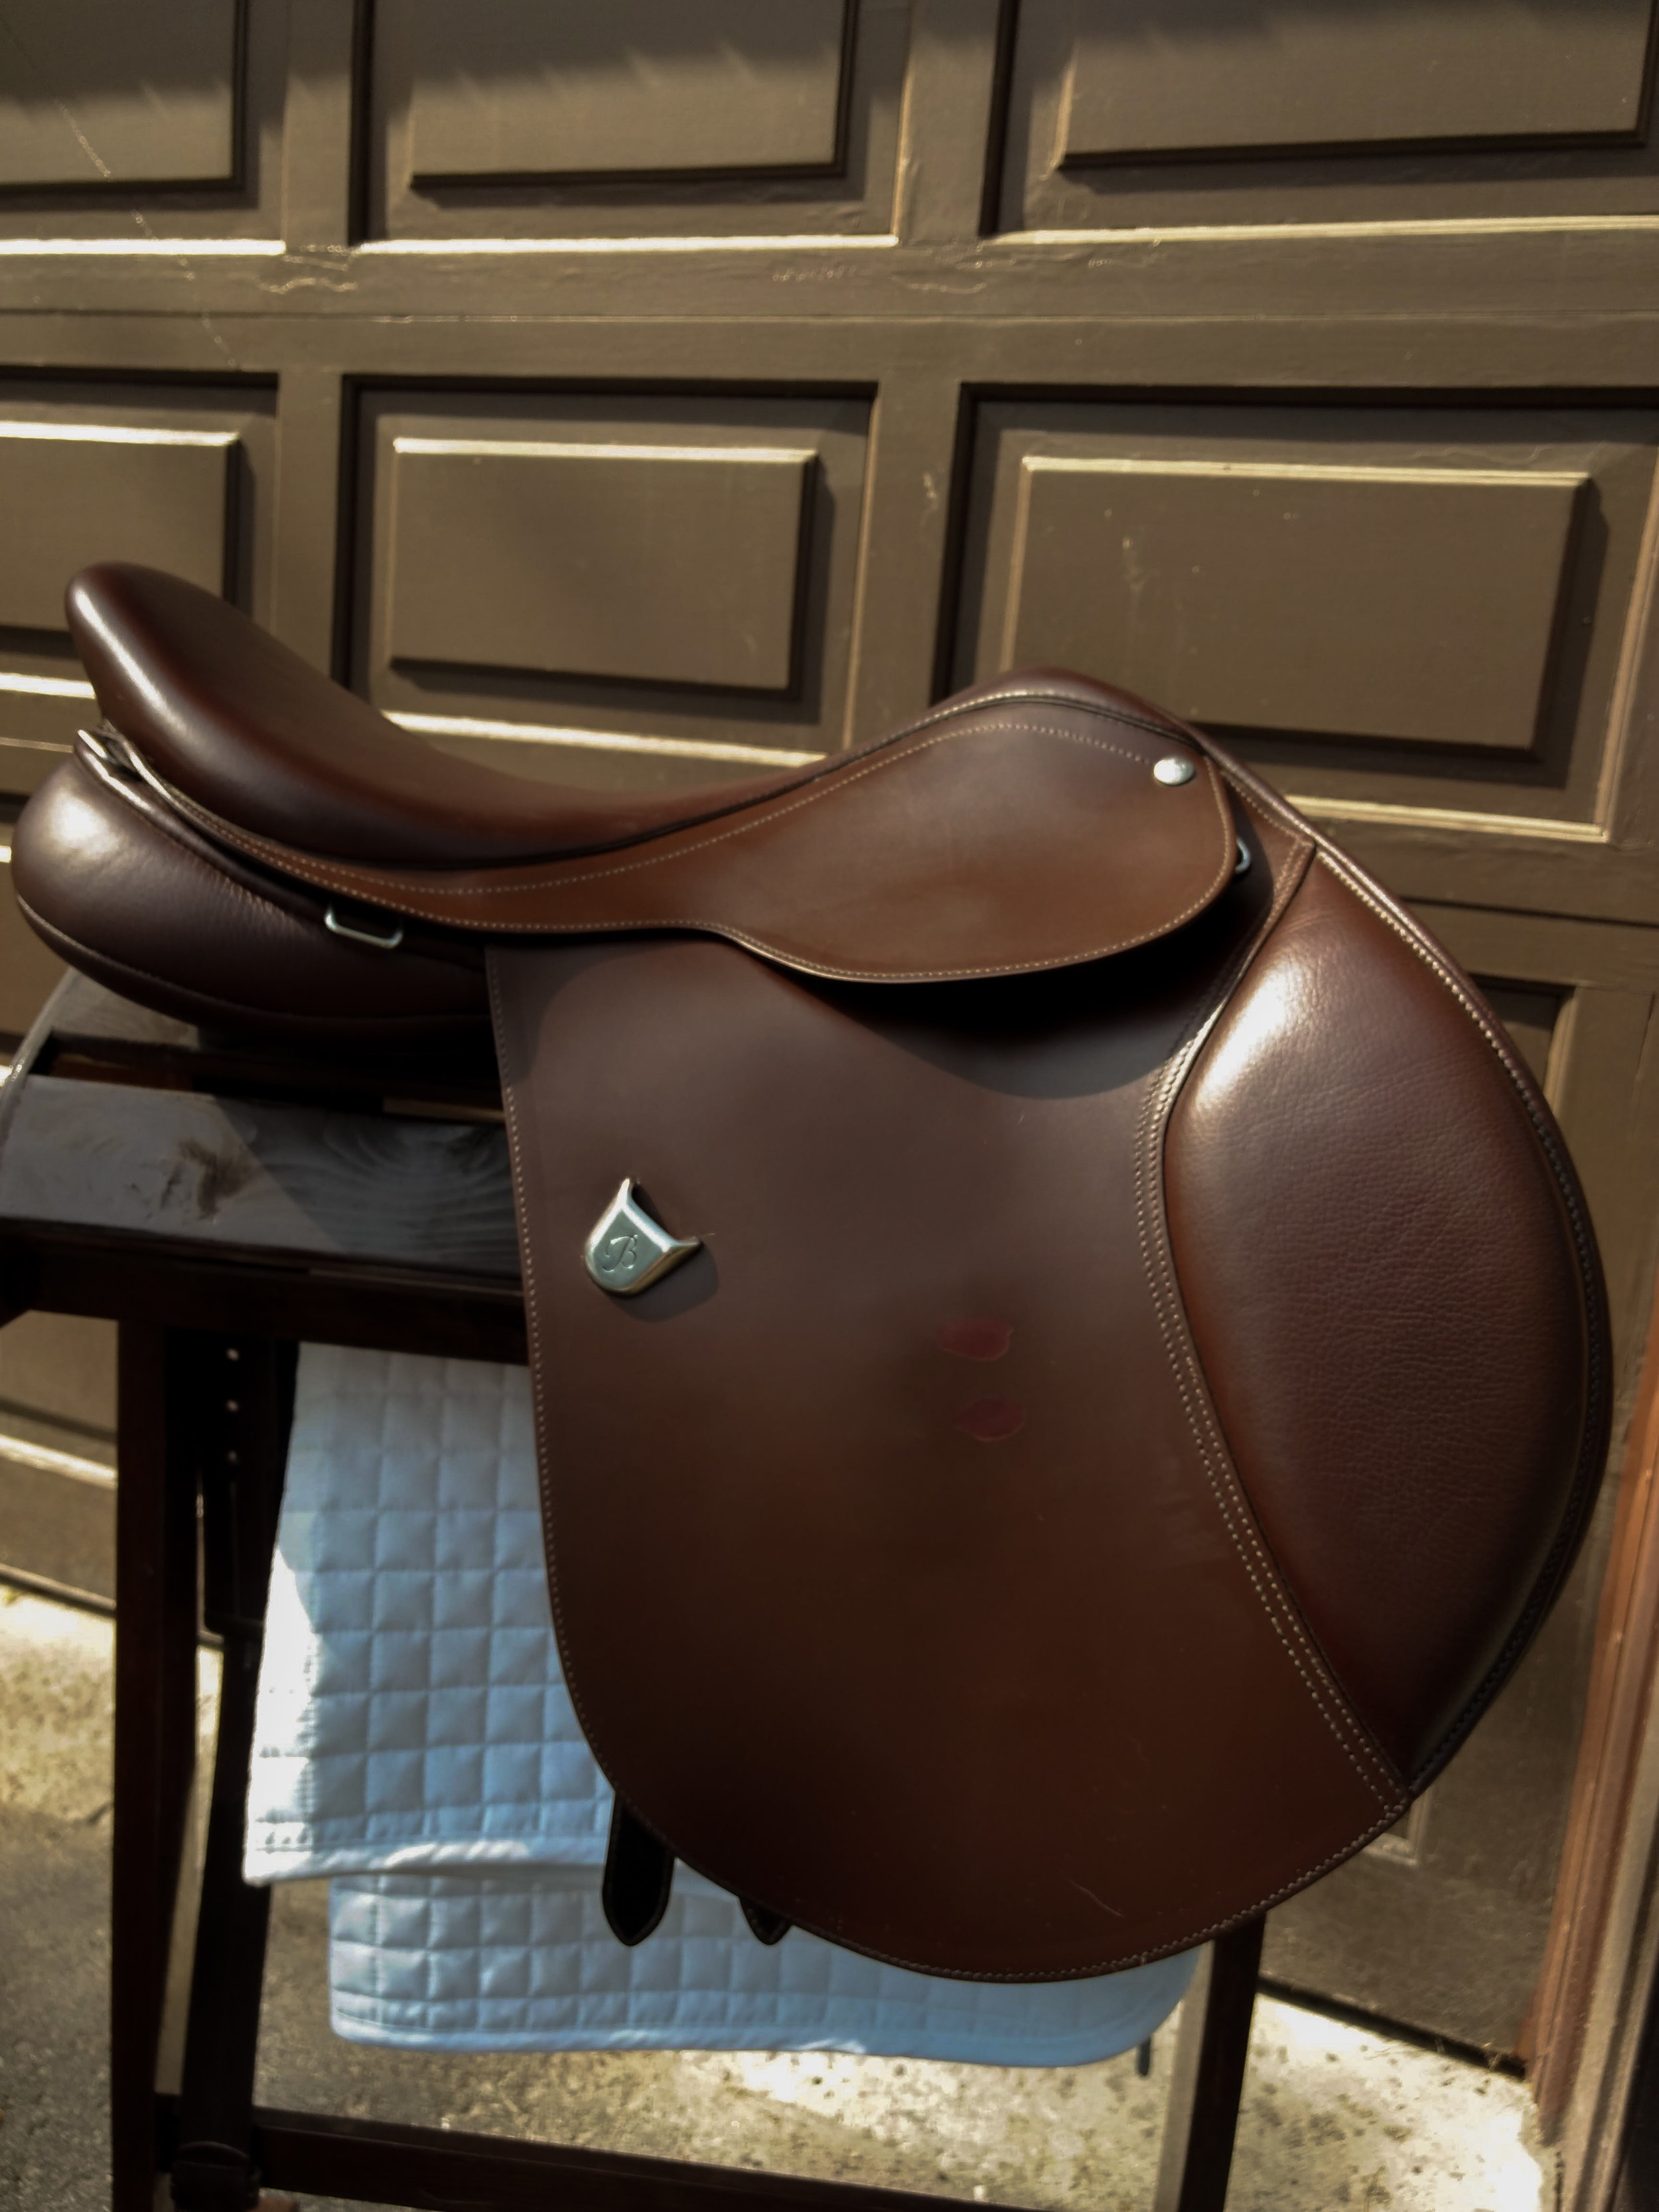 Right side of my saddle before the repair